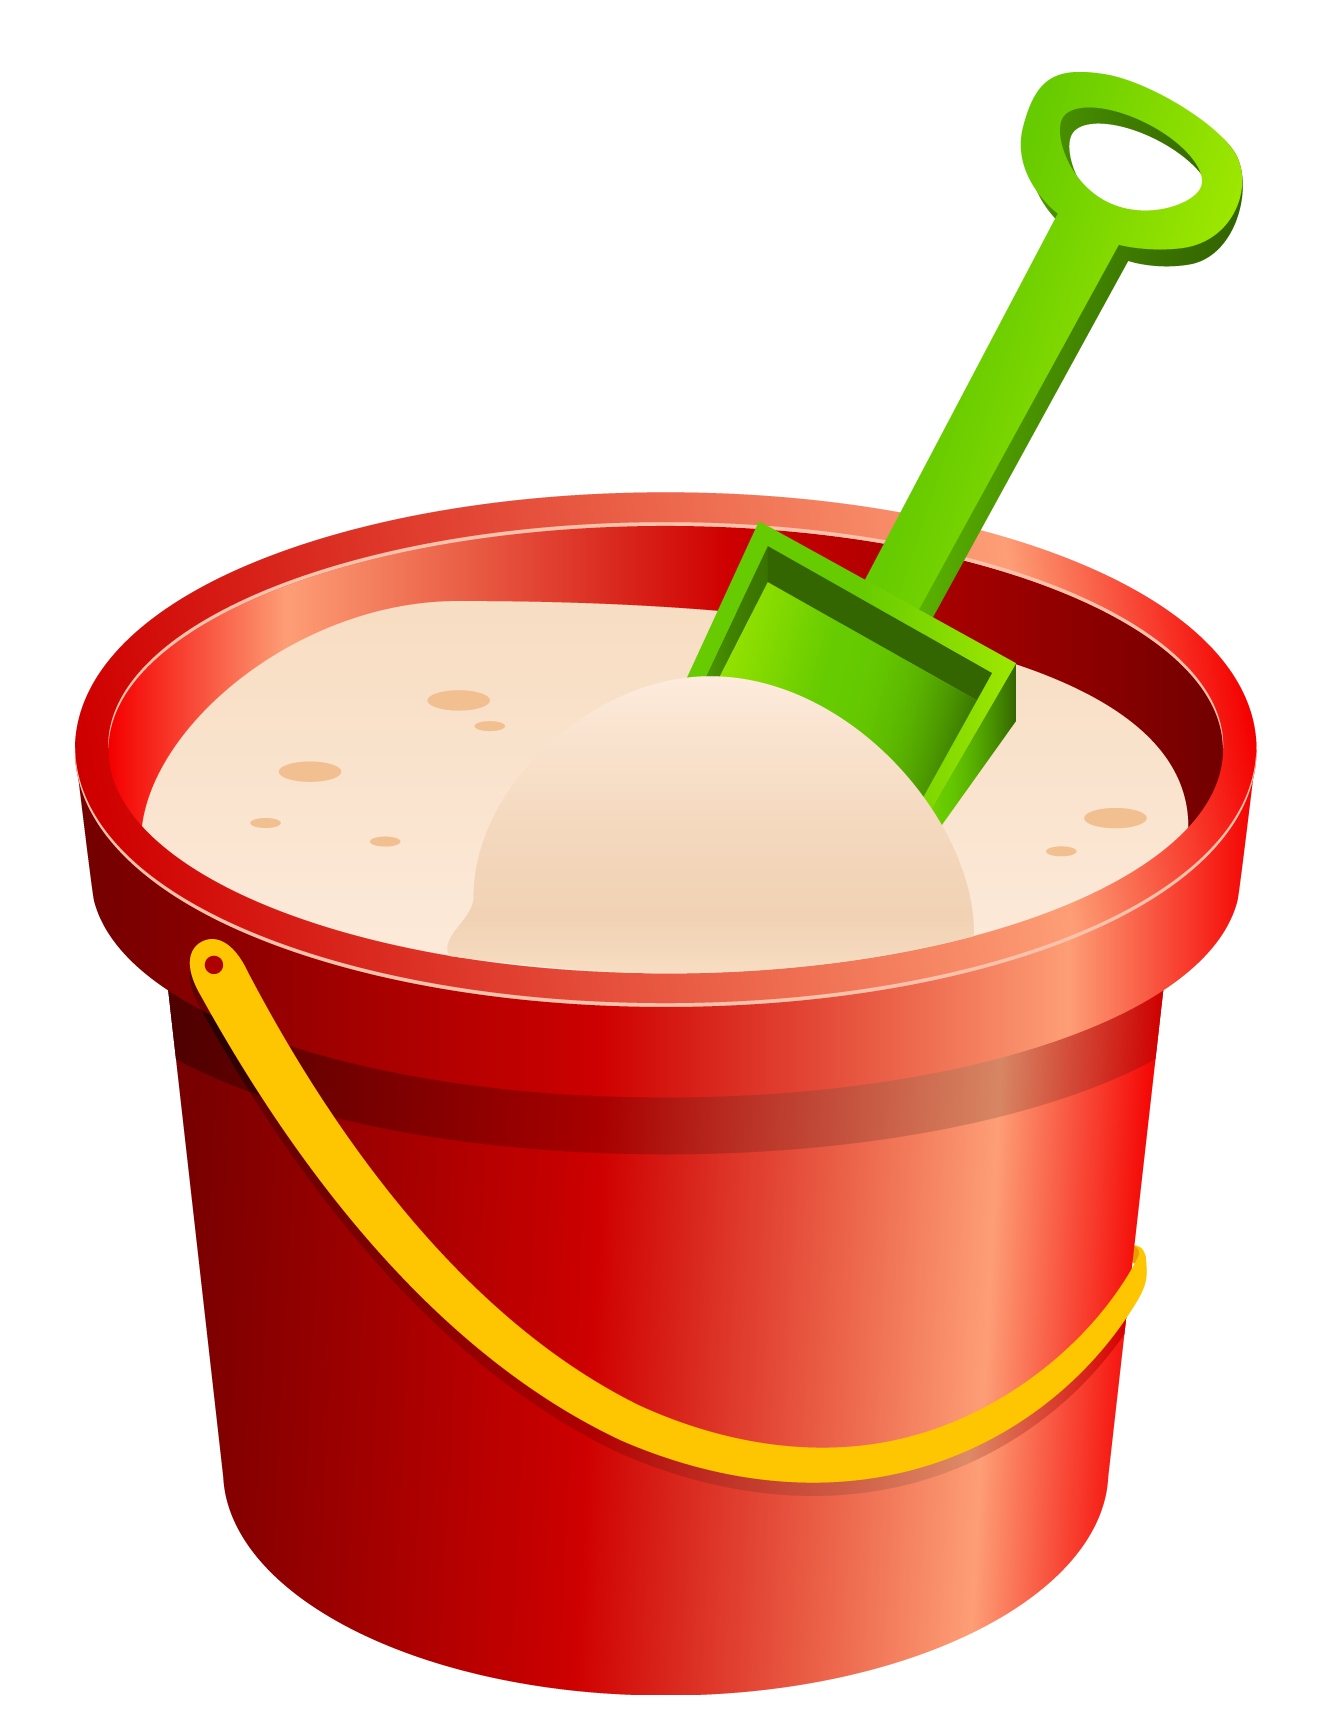 Sand bucket png. Red and green shovel